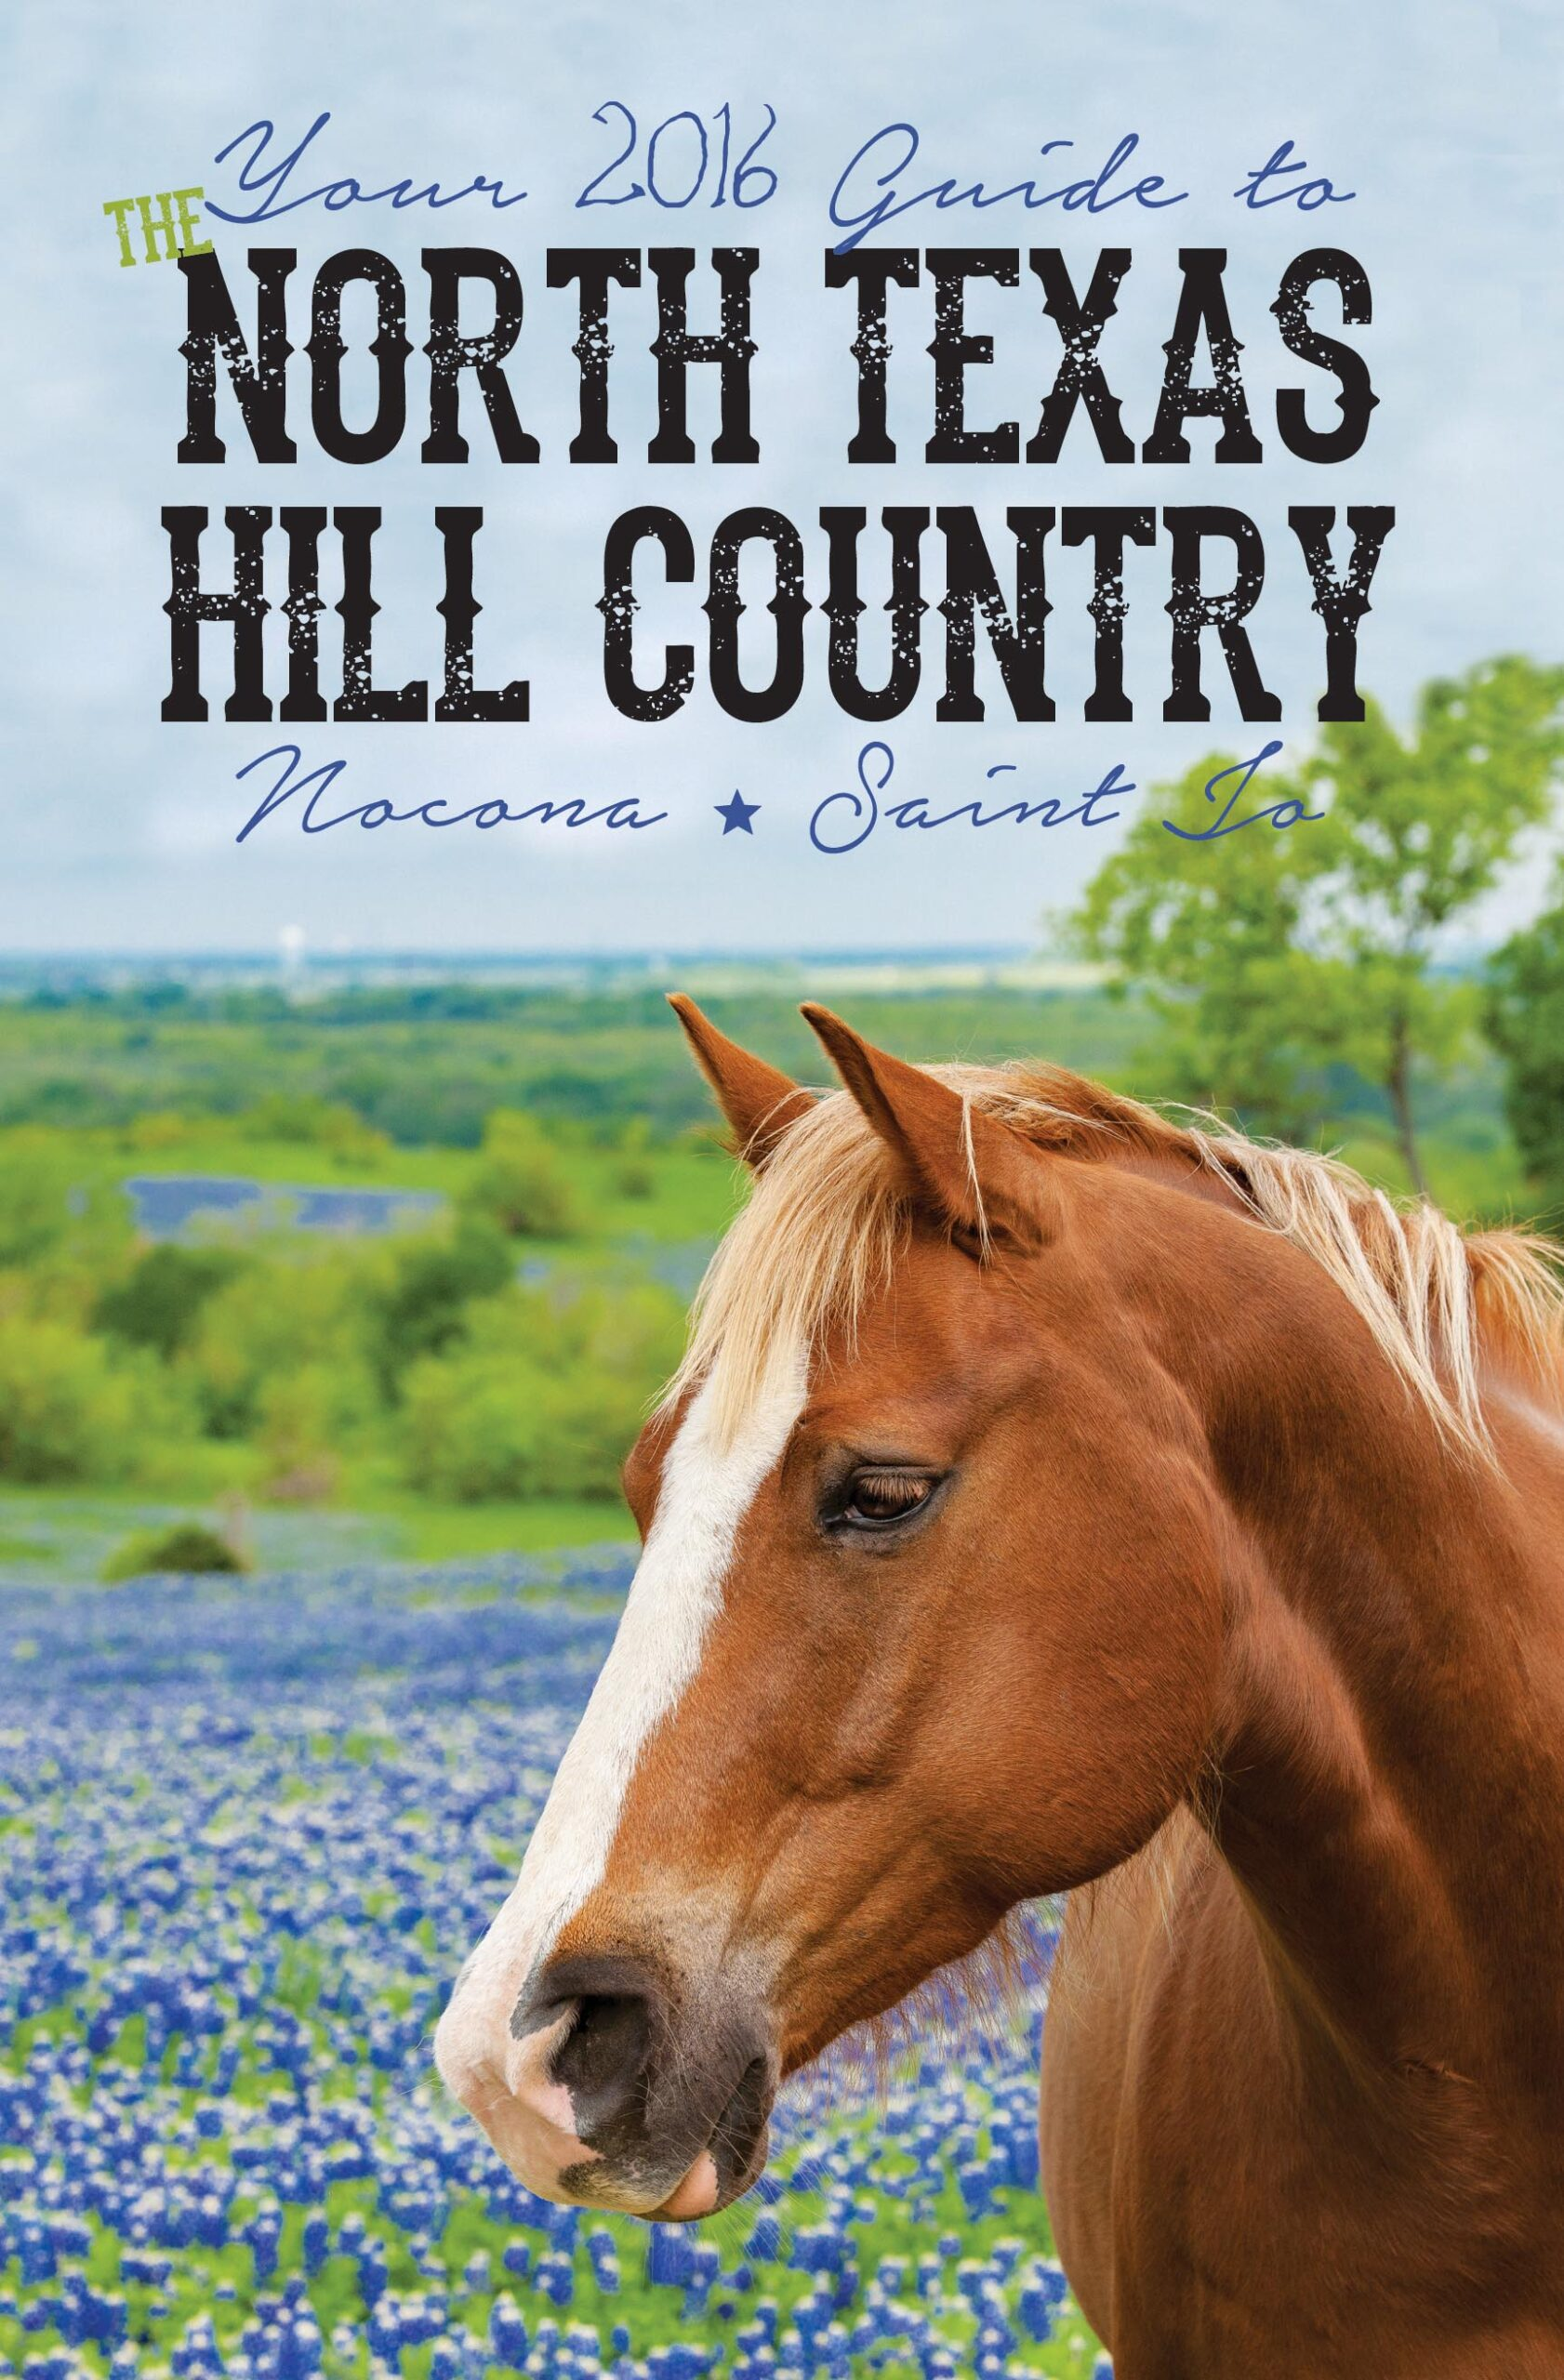 2016 North Texas Hill Country Guide-1